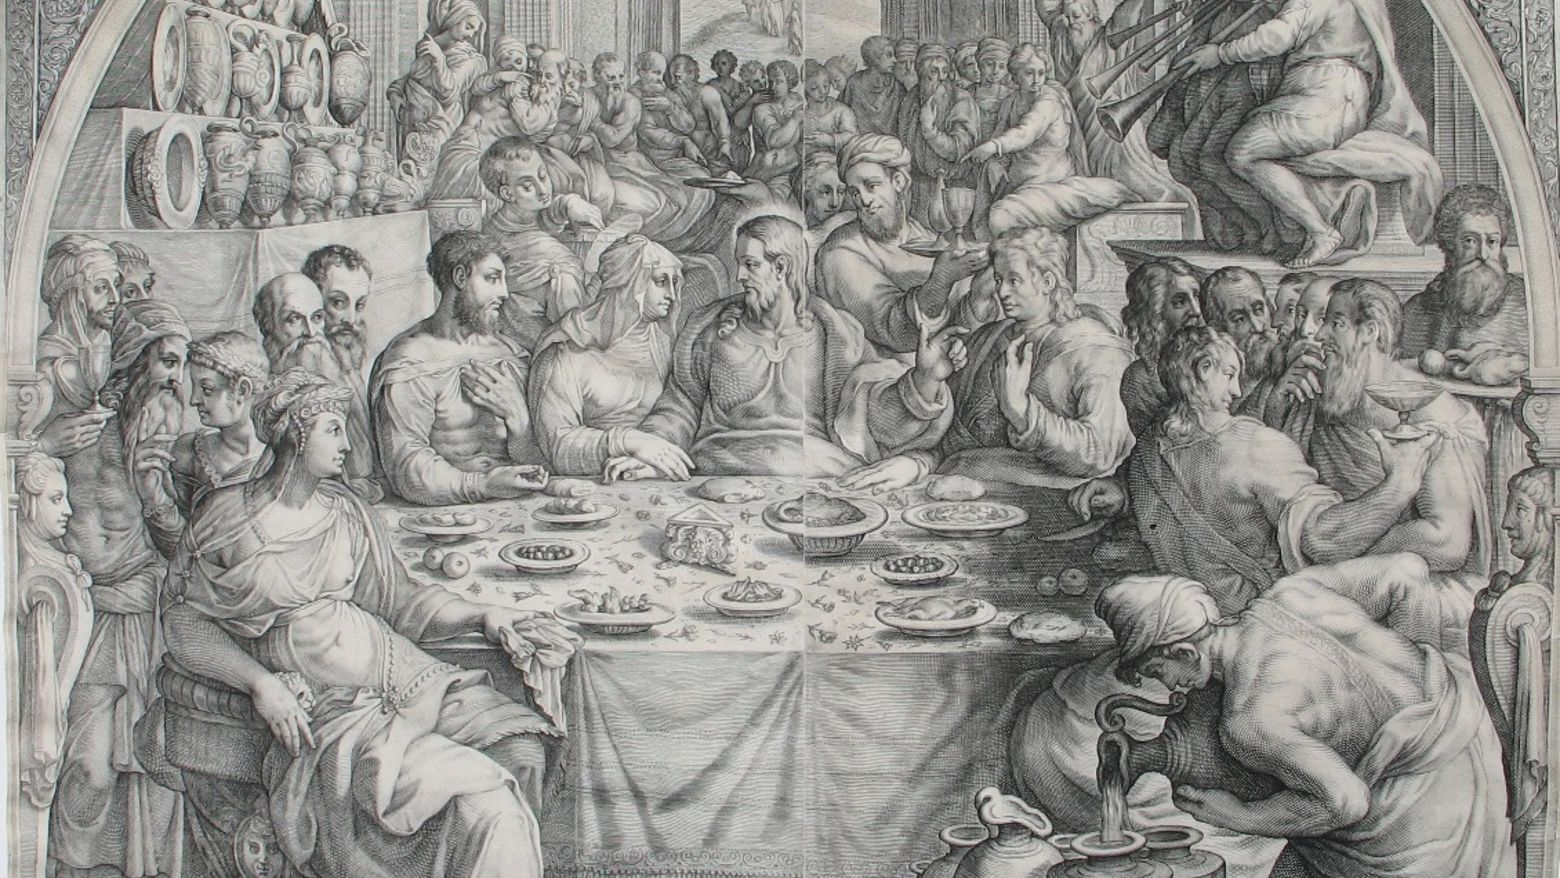 Hendrick Goltzius and Jacob Matham, The Marriage at Cana, ca. 1601